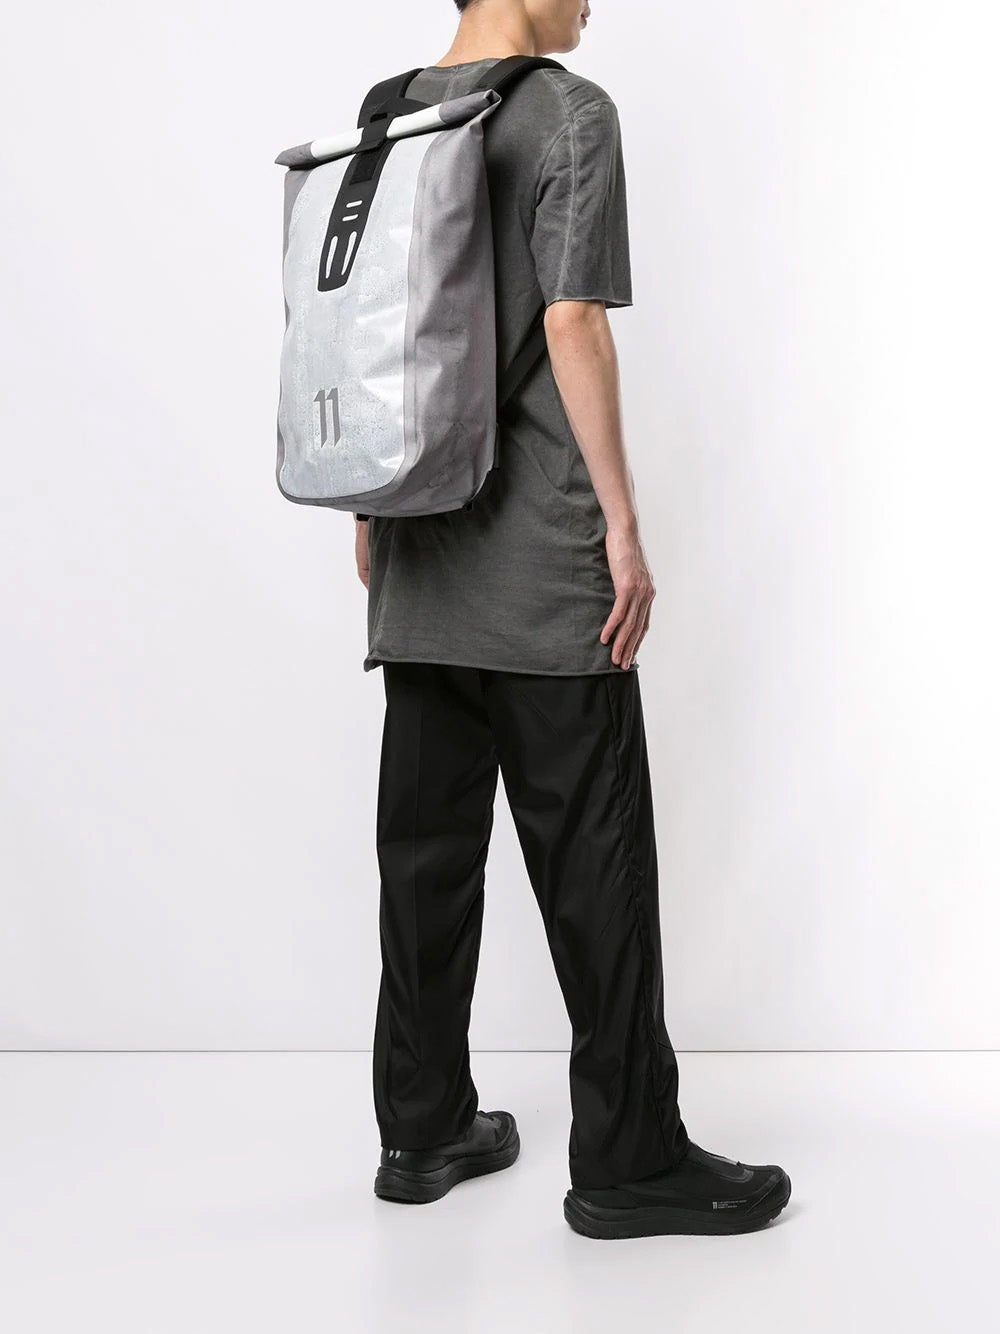 VELOCITY 2 - LOGO BACKPACK